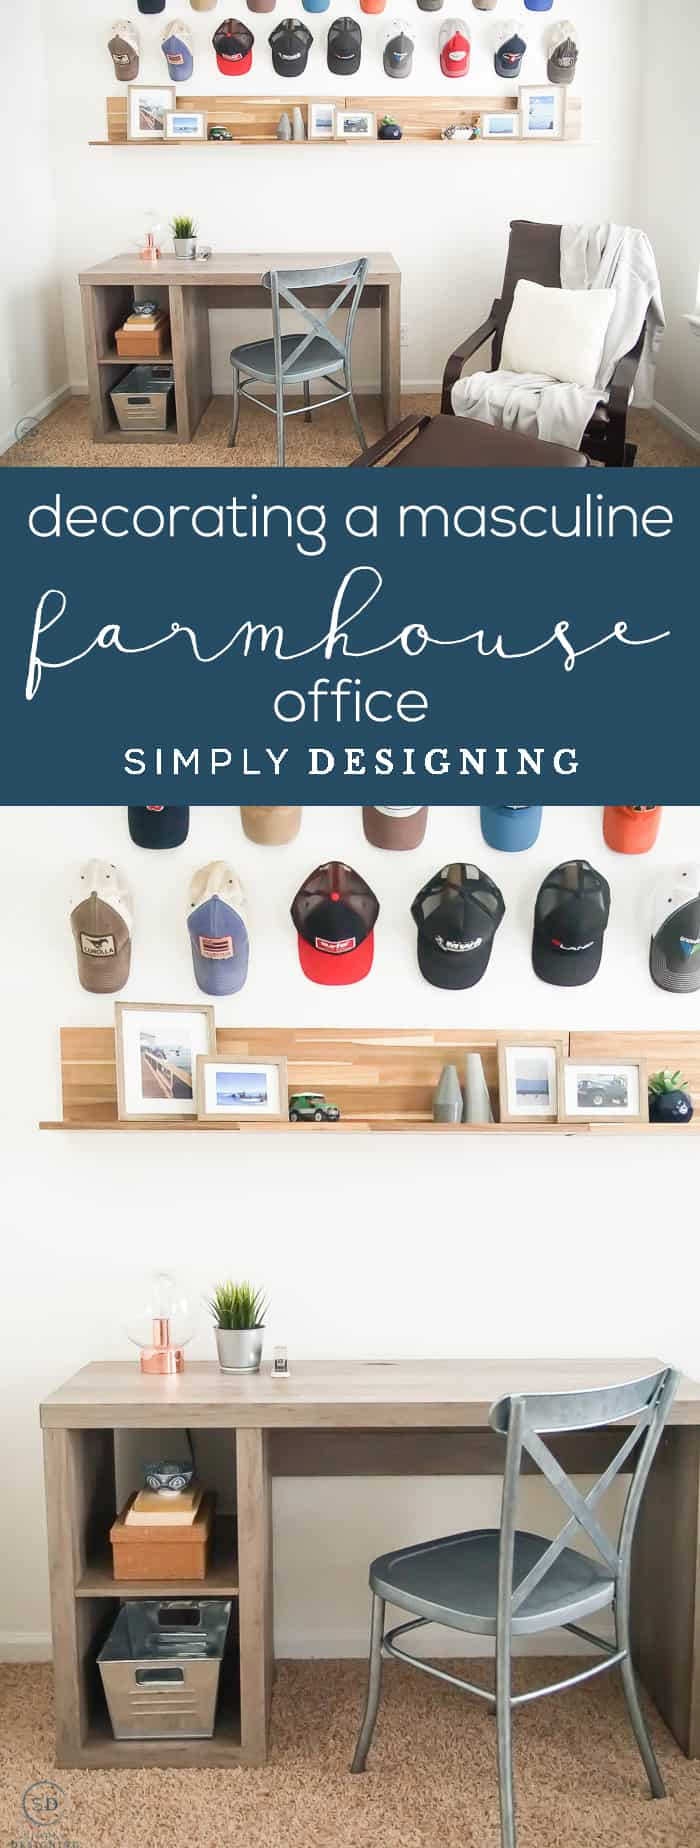 Decorating a masculine Farmhouse Office - mans office - farmhouse design - industrial farmhouse decor - man cave